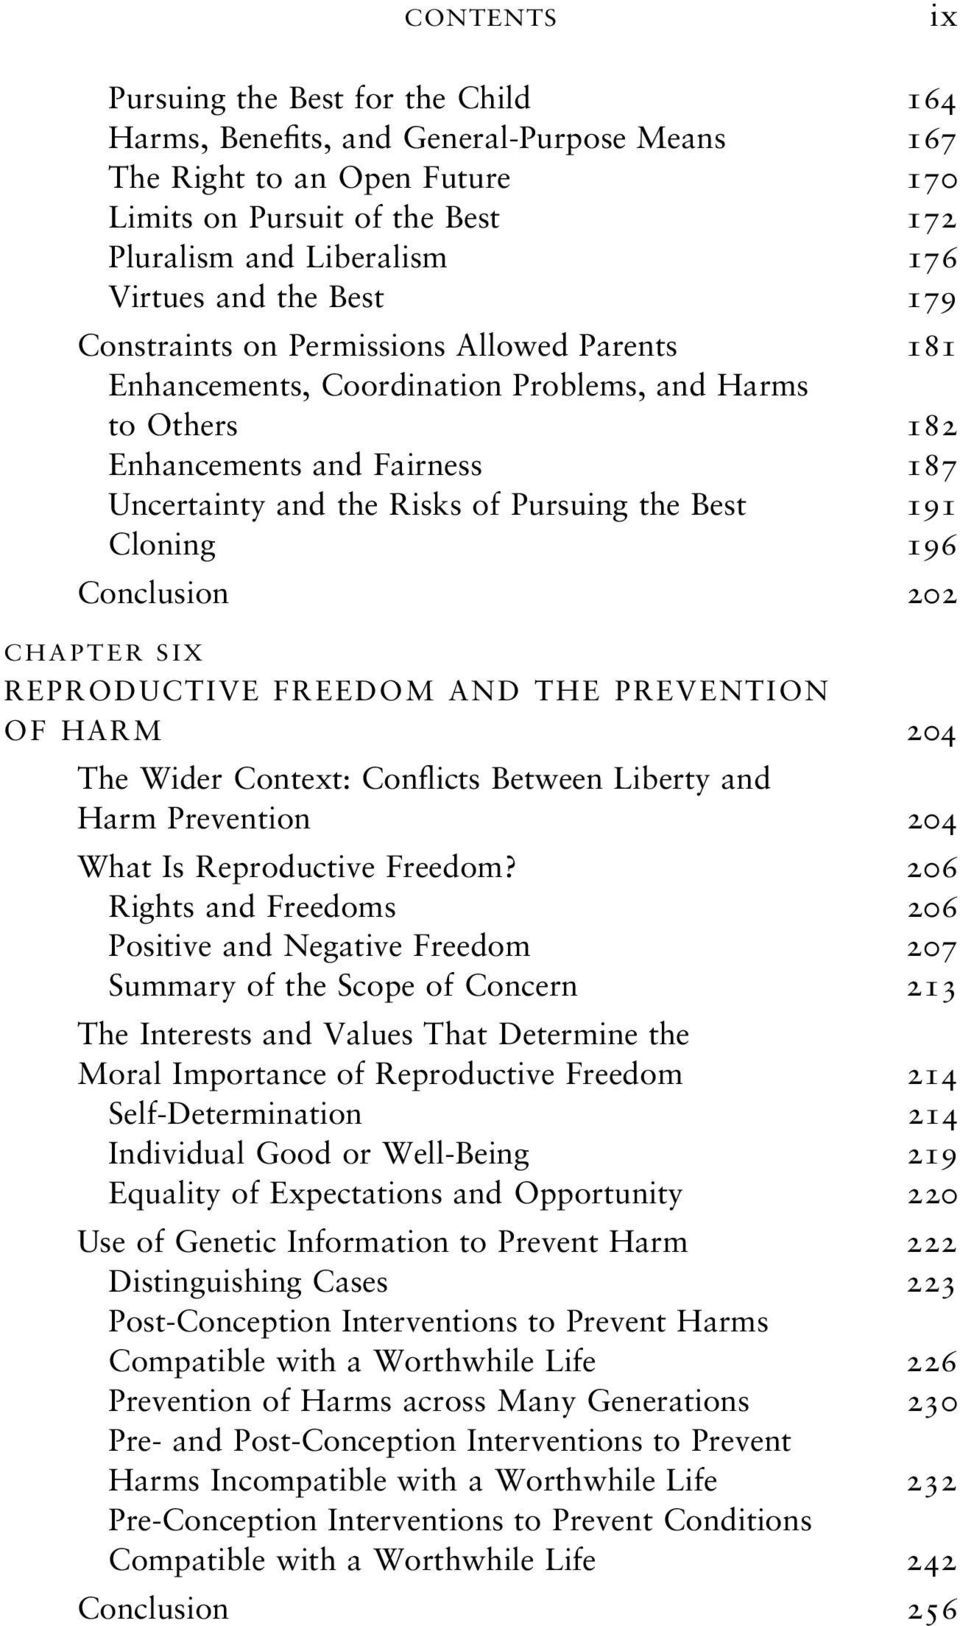 Best 191 Cloning 196 Conclusion 202 CHAPTER SIX REPRODUCTIVE FREEDOM AND THE PREVENTION OF HARM 204 The Wider Context: Conflicts Between Liberty and Harm Prevention 204 What Is Reproductive Freedom?